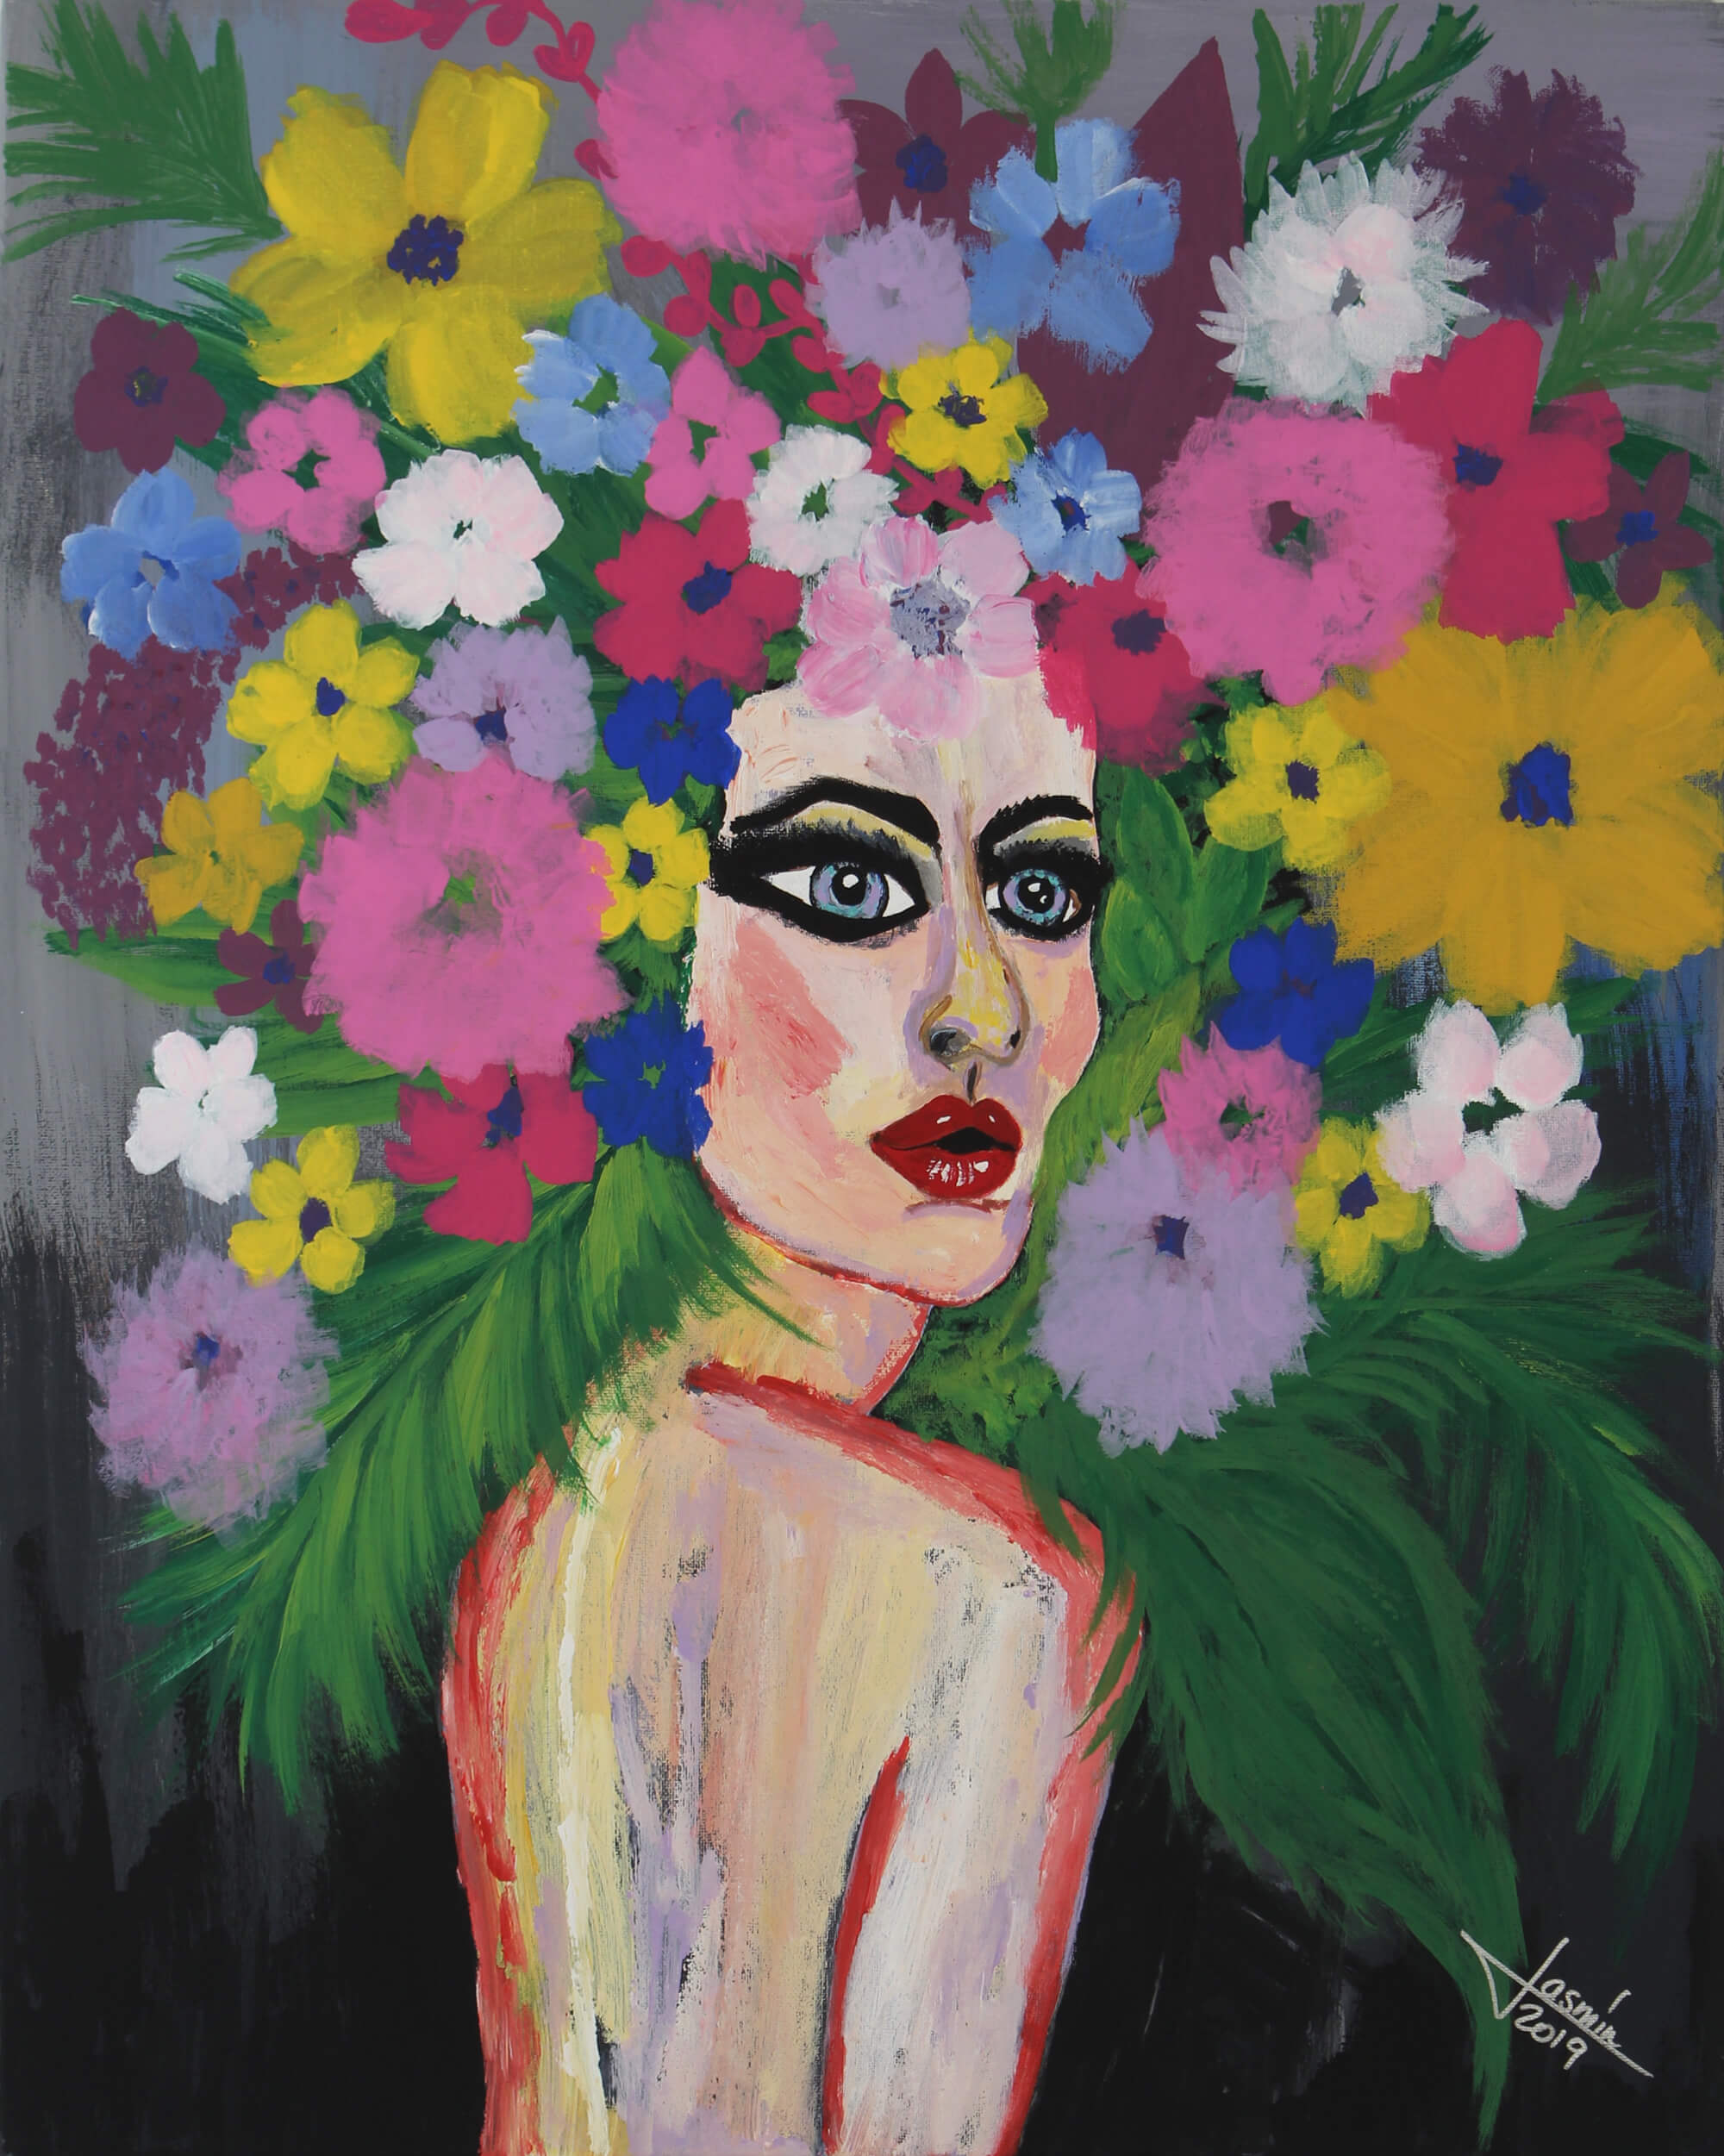 Acrylic painting of a side torso of a nude female with hair made up of multicolor an multi size flowers and branches by Jasmín Camacho